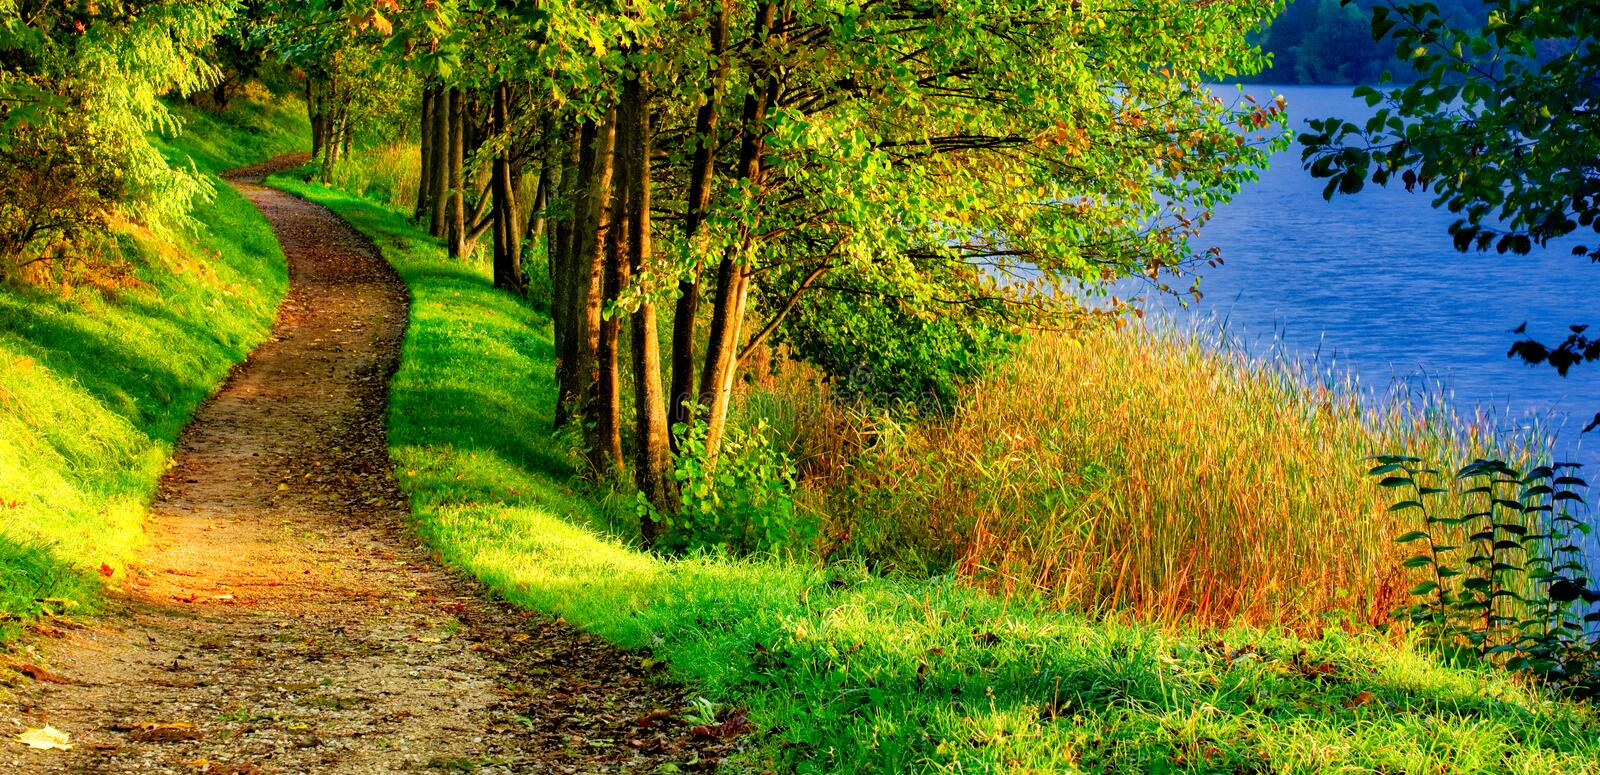 Scenic nature landscape of path near lake stock photos